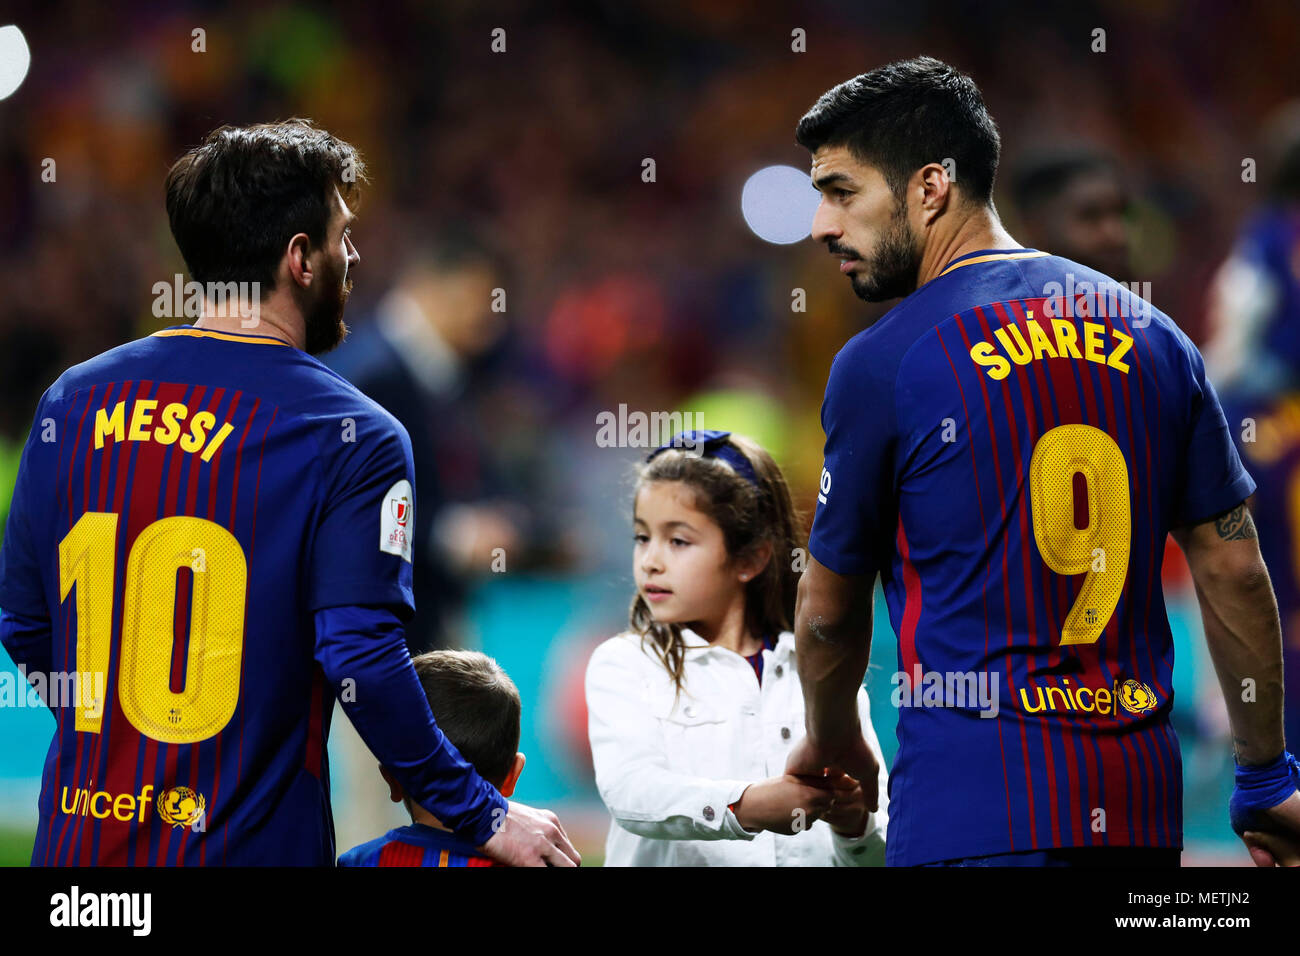 b7397a8dbfa Lionel Messi Luis Suarez Barcelona Stock Photos   Lionel Messi Luis ...